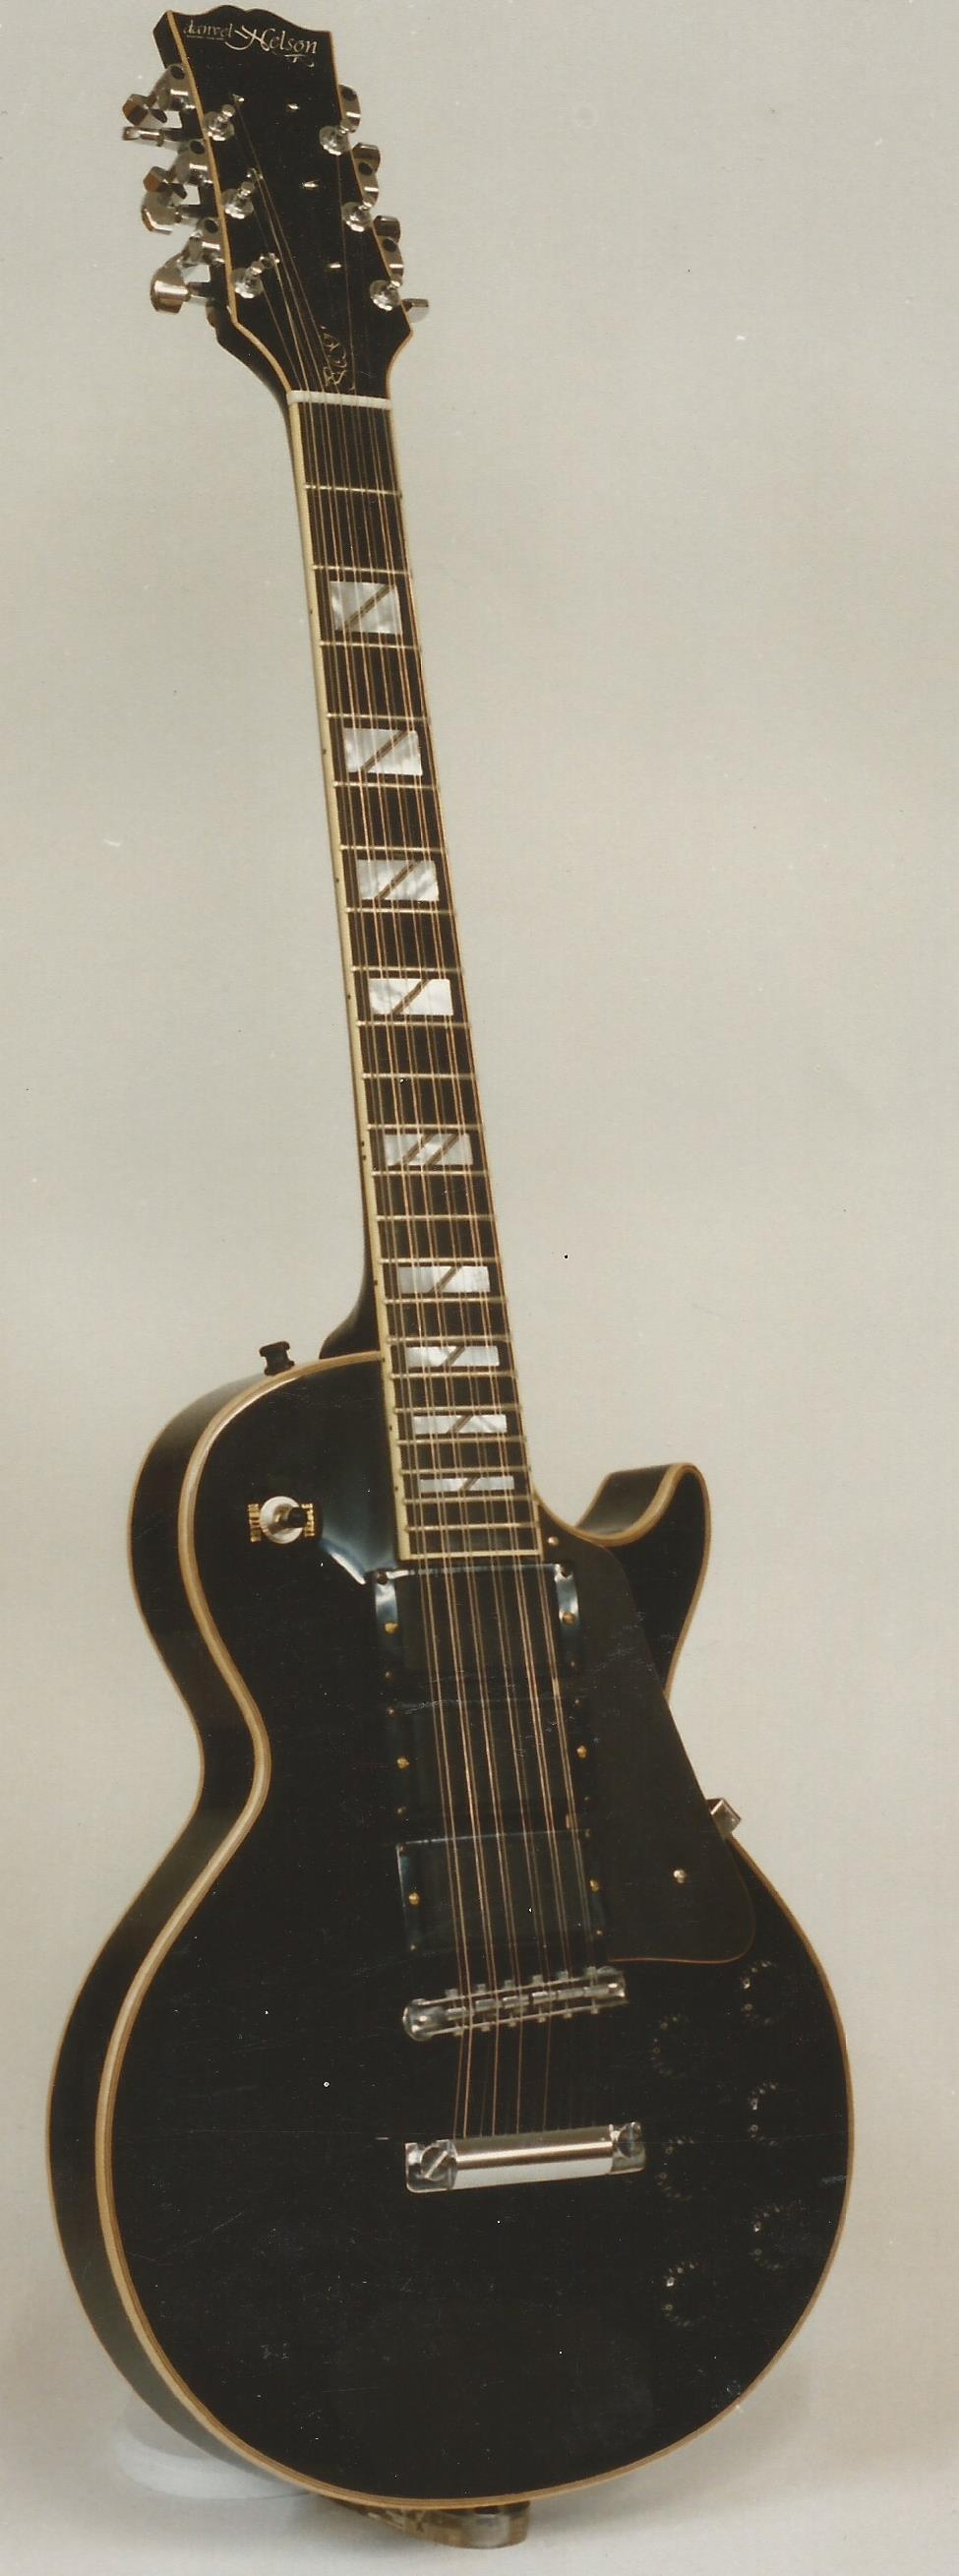 Les Paul Type Guitar by Danvel